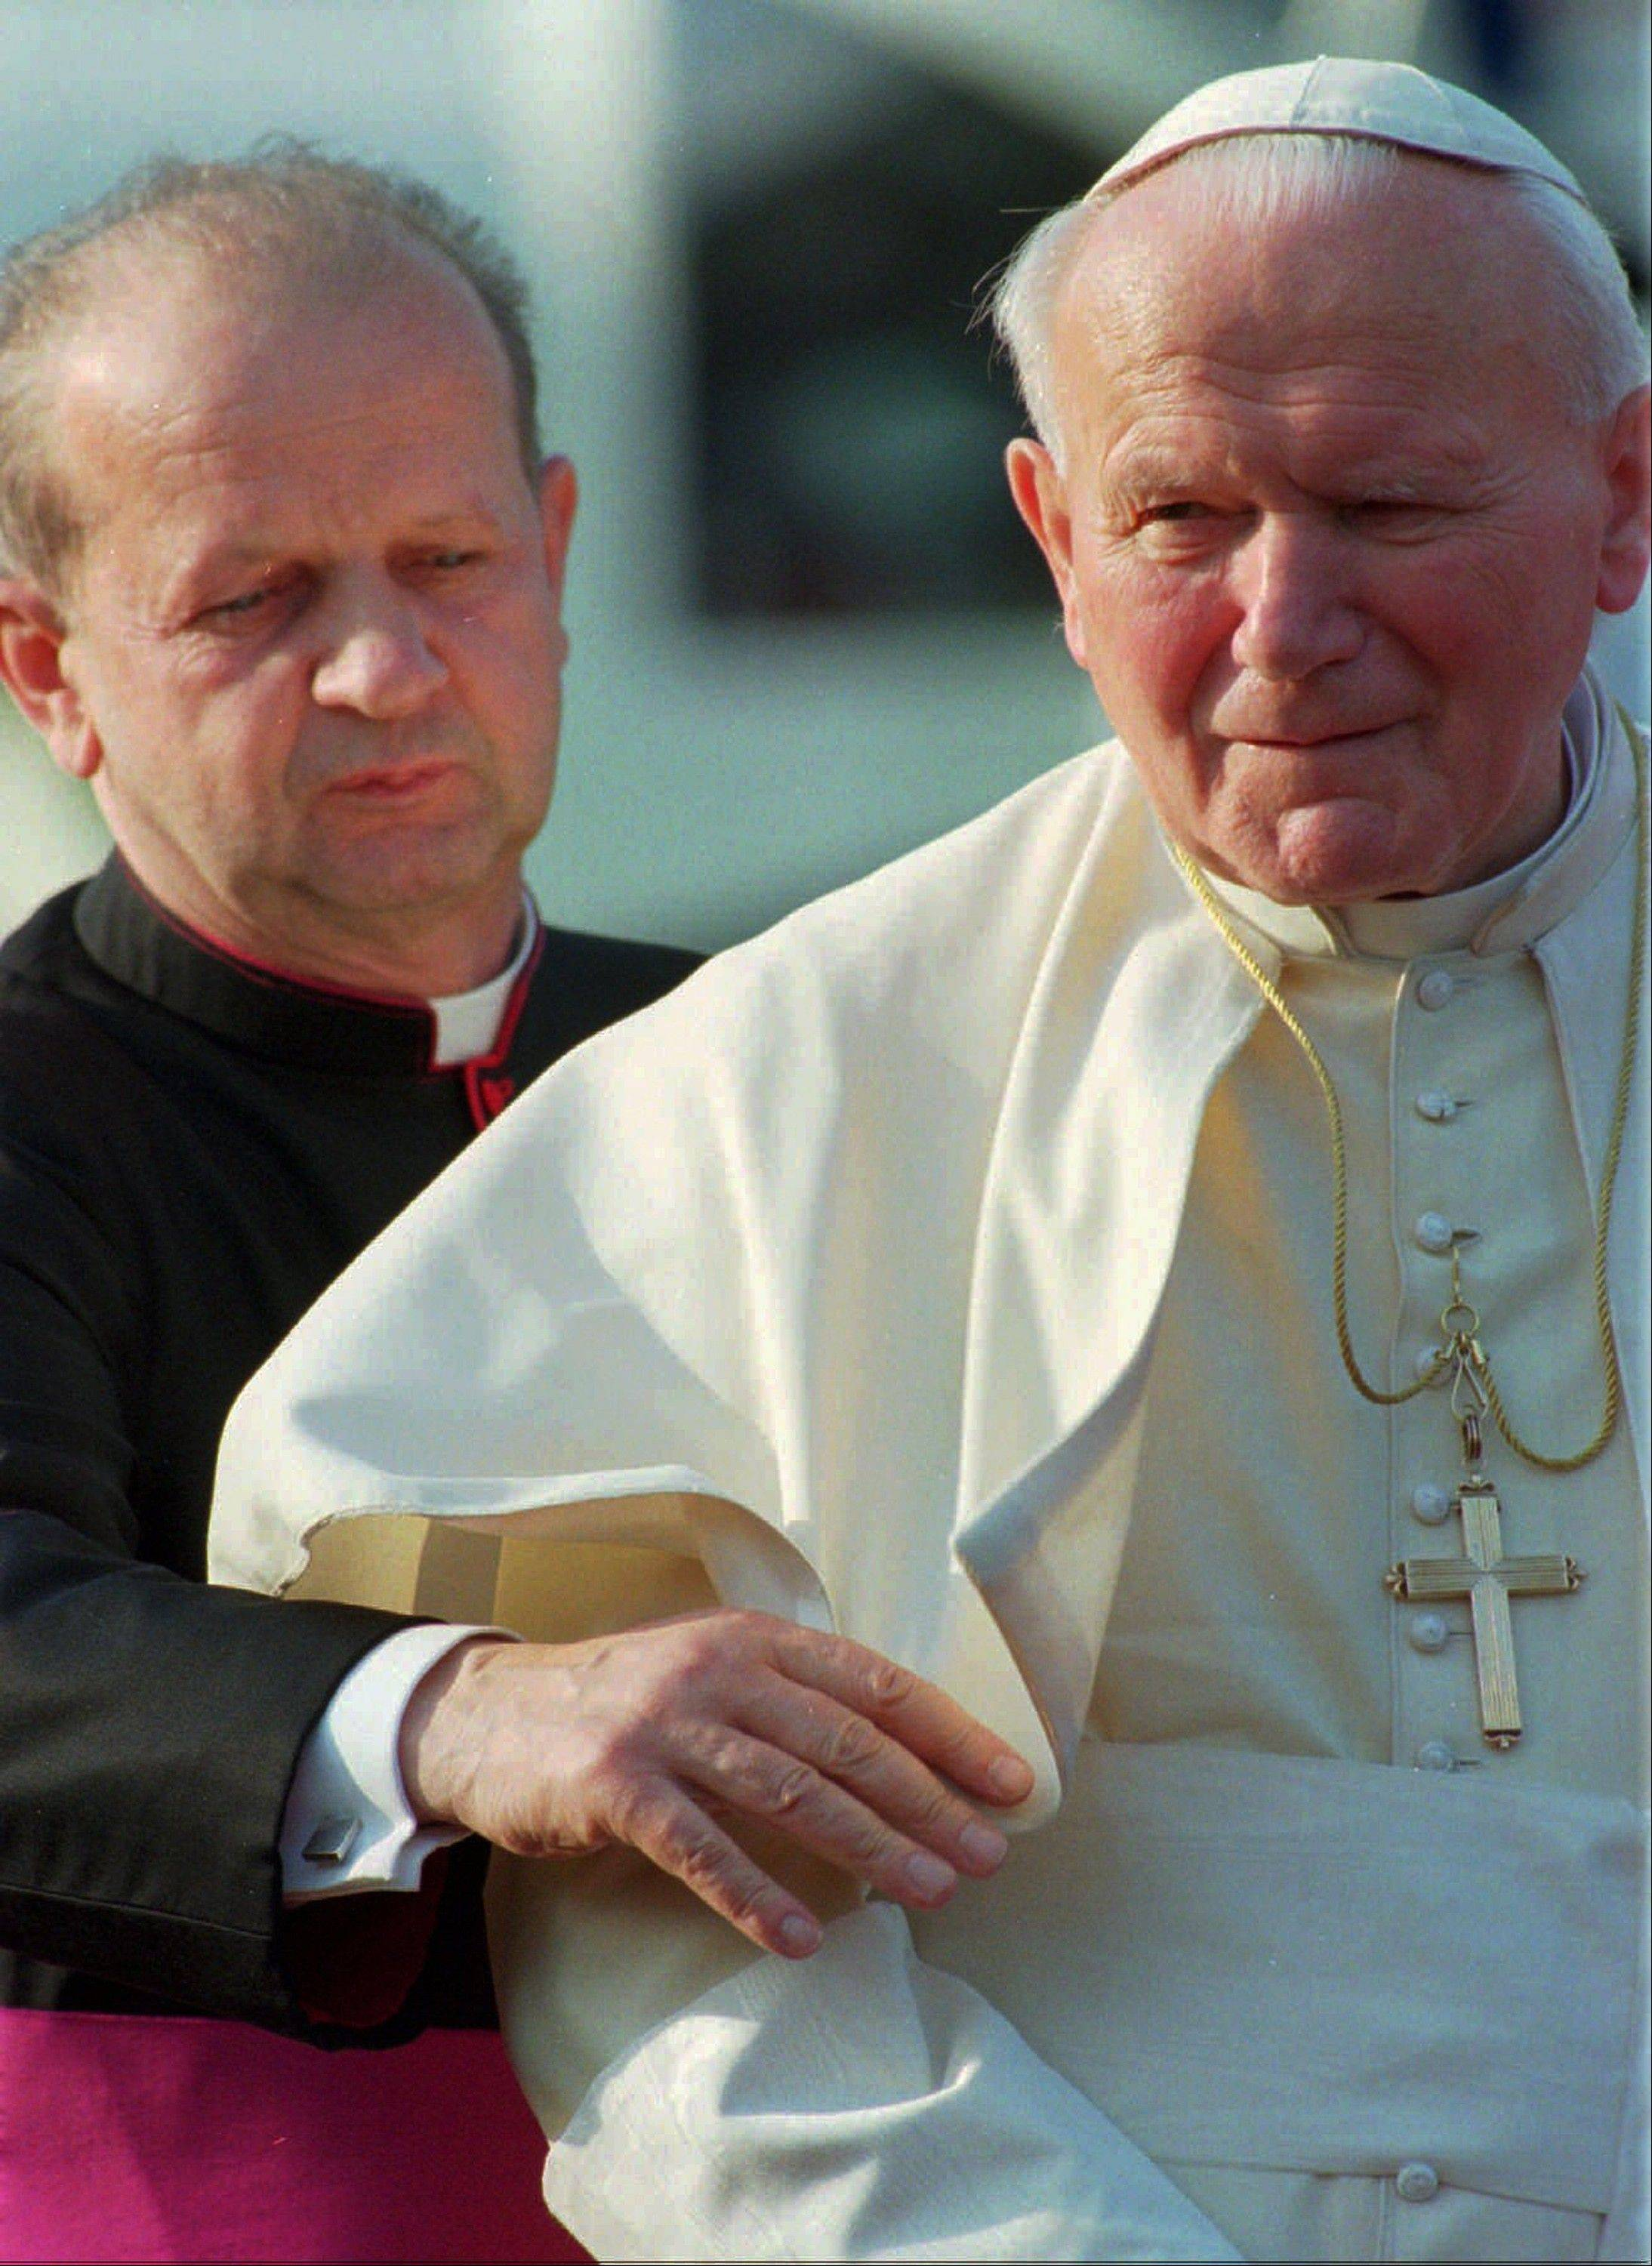 Poles are divided between praise and condemnation of Pope John Paul II's personal secretary Stanislaw Dziwisz over publishing the beloved pontiff's personal notes against his last will and testament.